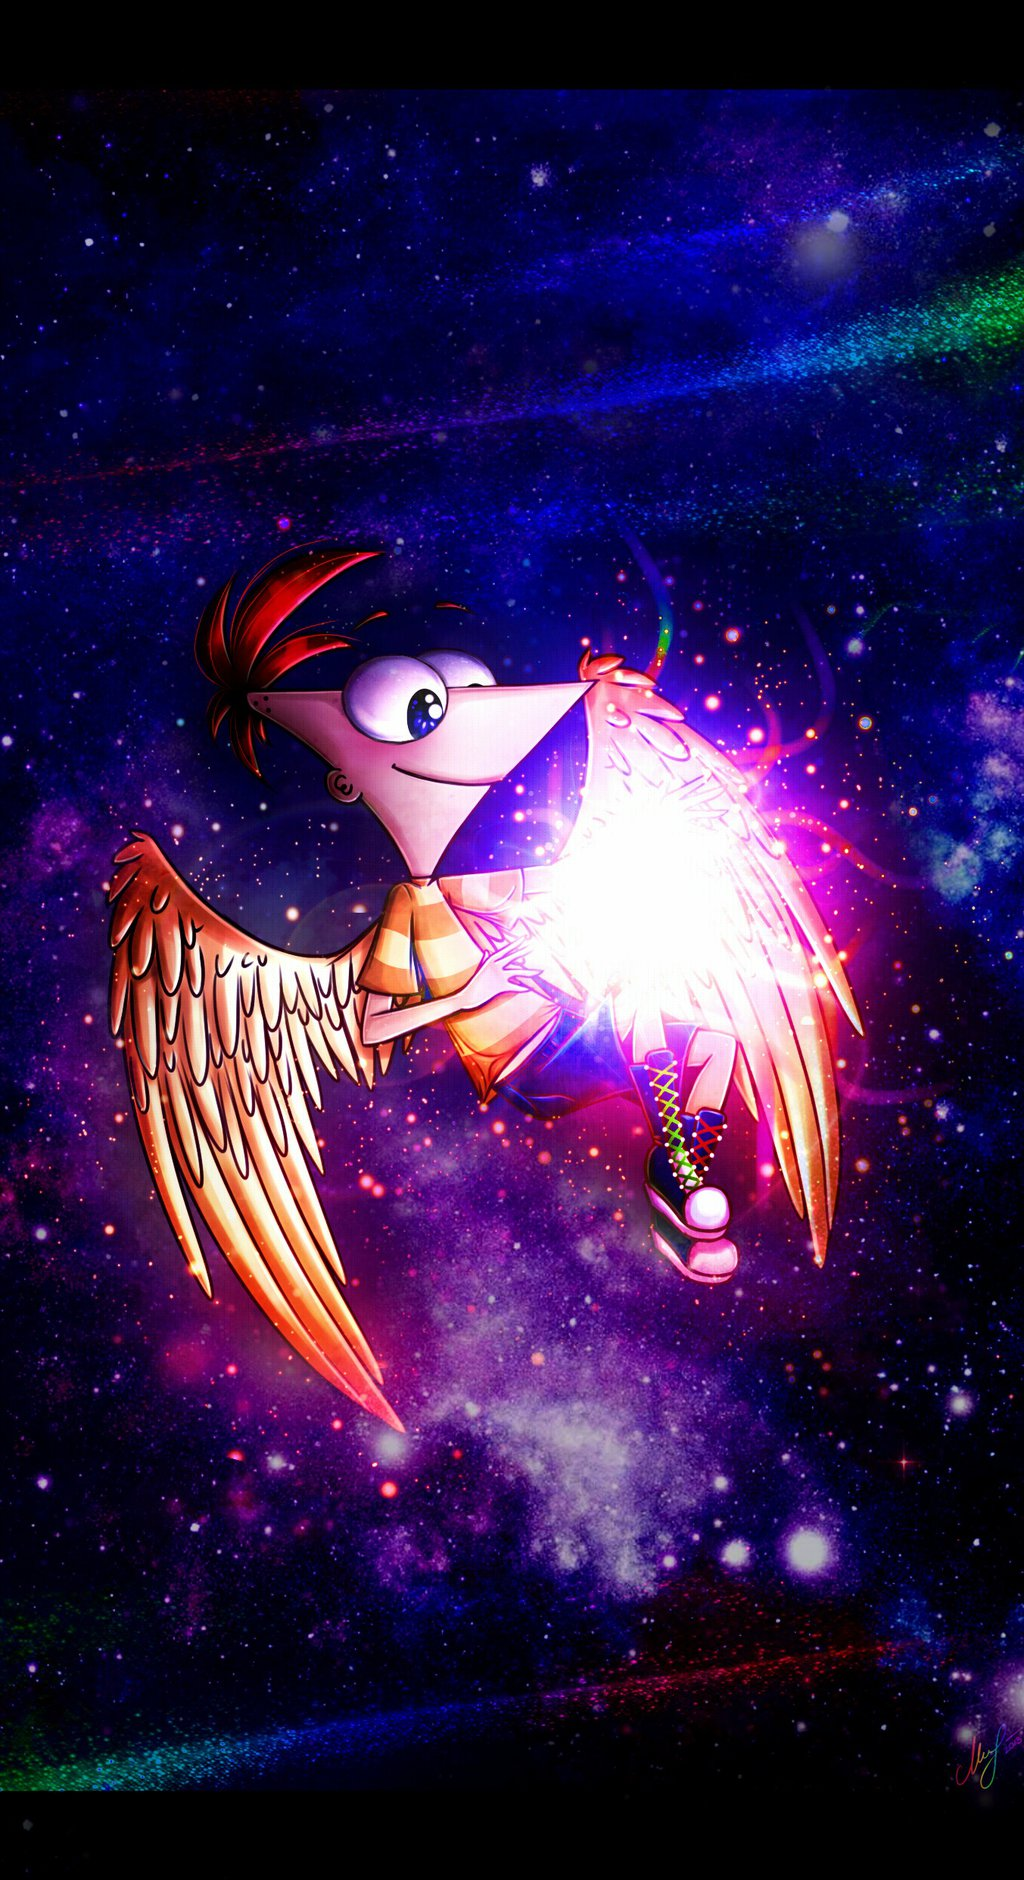 Hd Wallpapers For Pc With Quotes Phineas And Isabella Images Space Dreamer Hd Wallpaper And